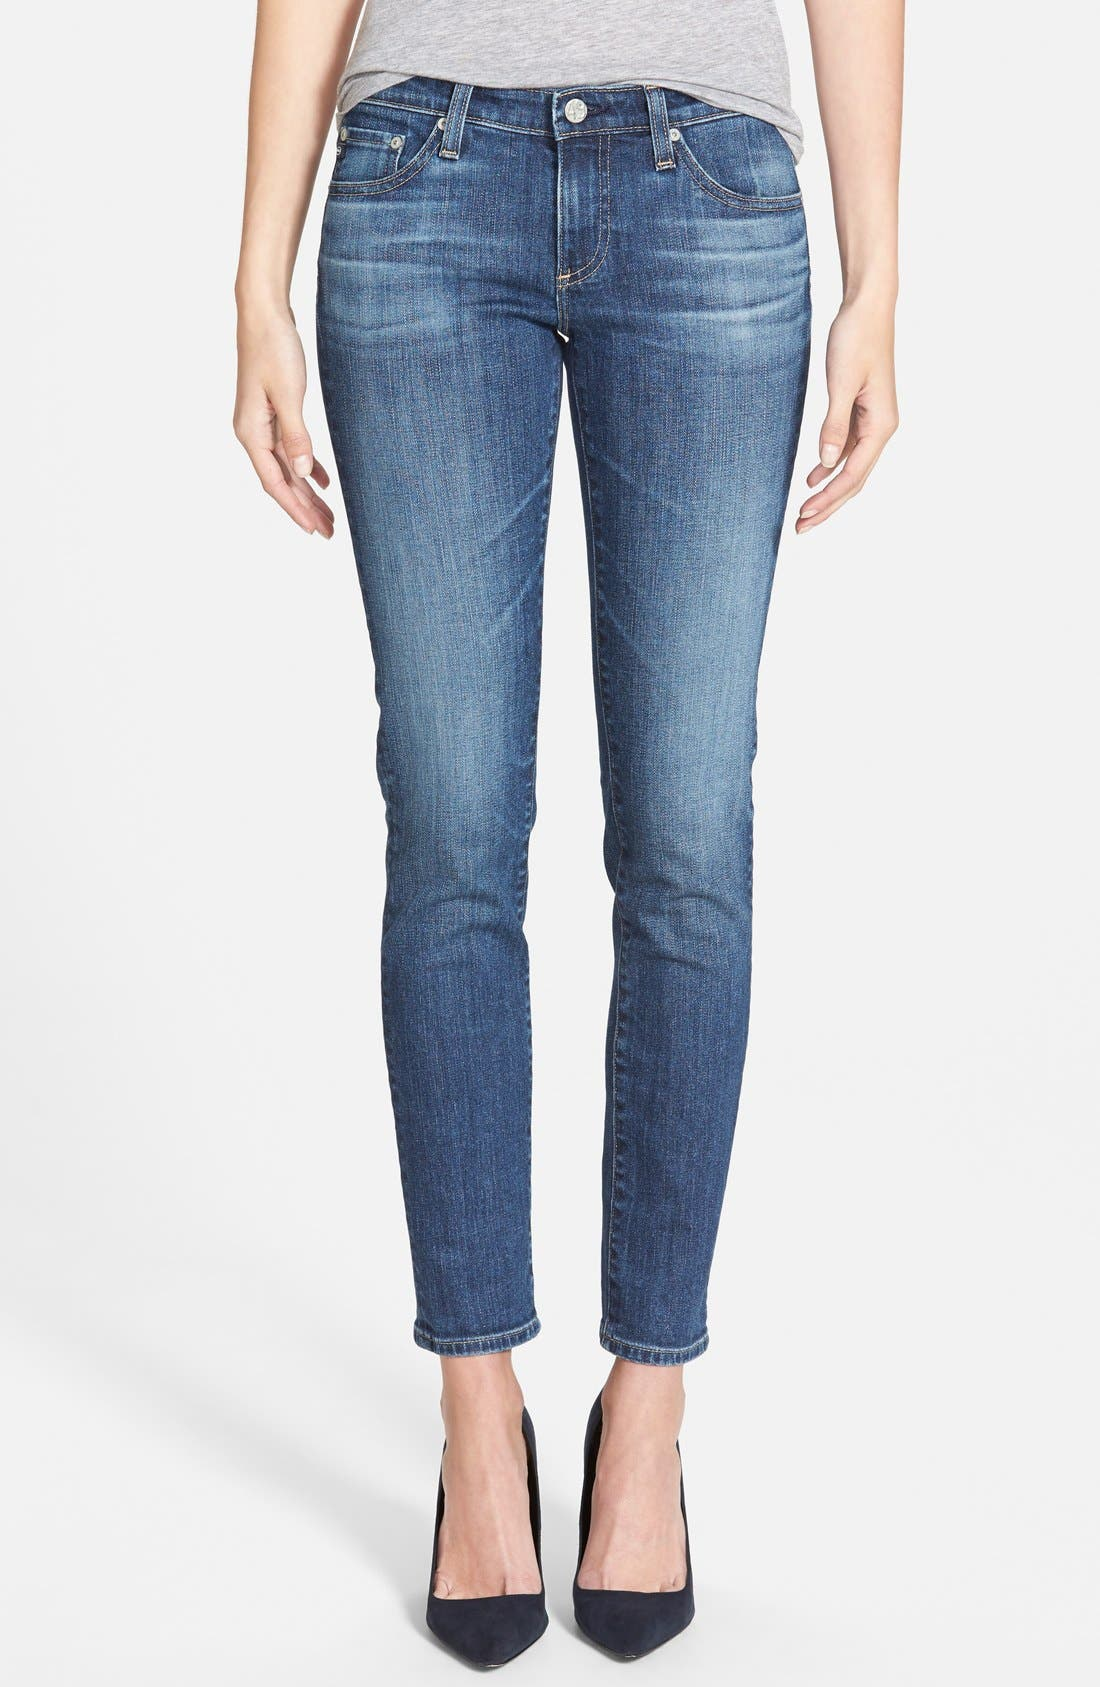 'The Stilt' Cigarette Leg Stretch Jeans,                             Main thumbnail 1, color,                             403